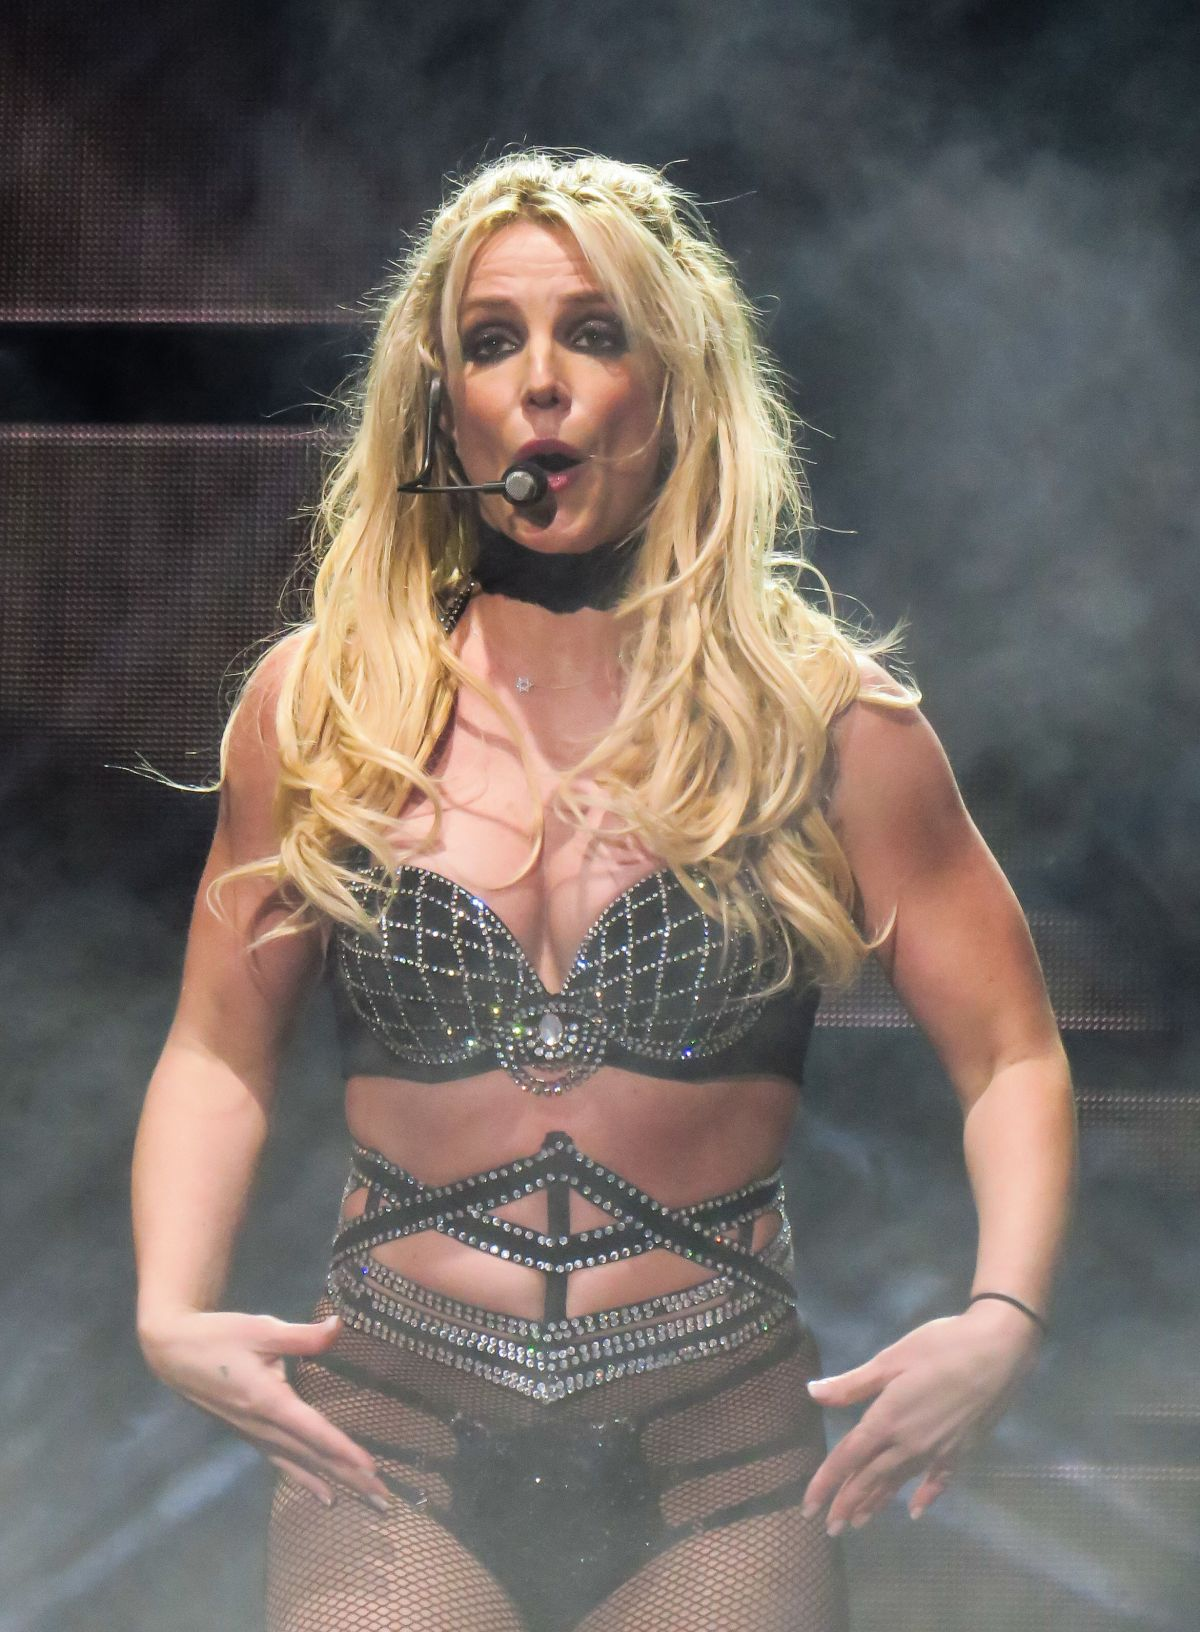 Through Britney spears see